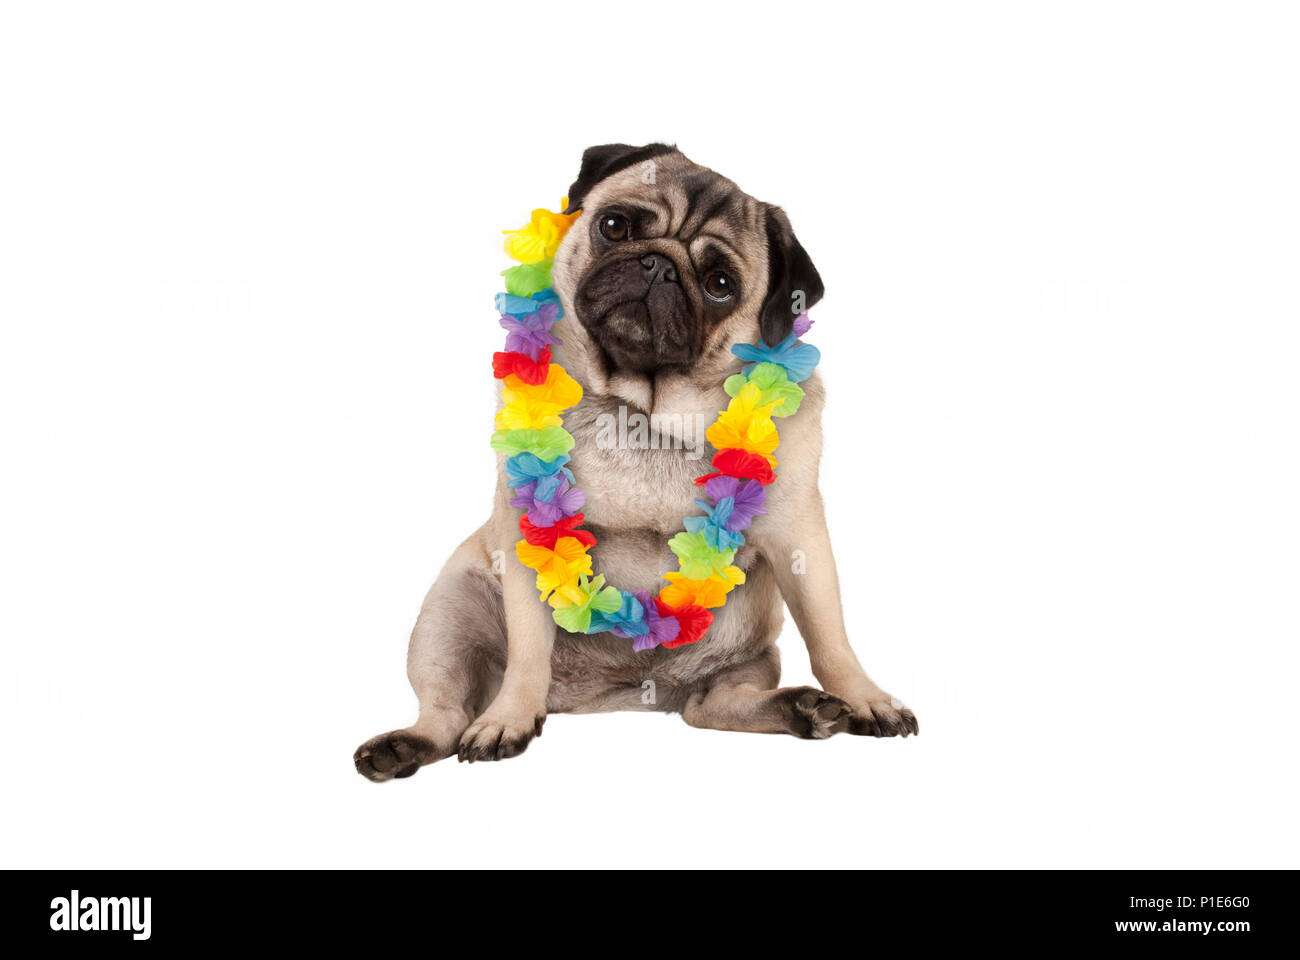 cute sweet pug puppy dog sitting down wearing hawaiian flower garland, isolated on white background Stock Photo